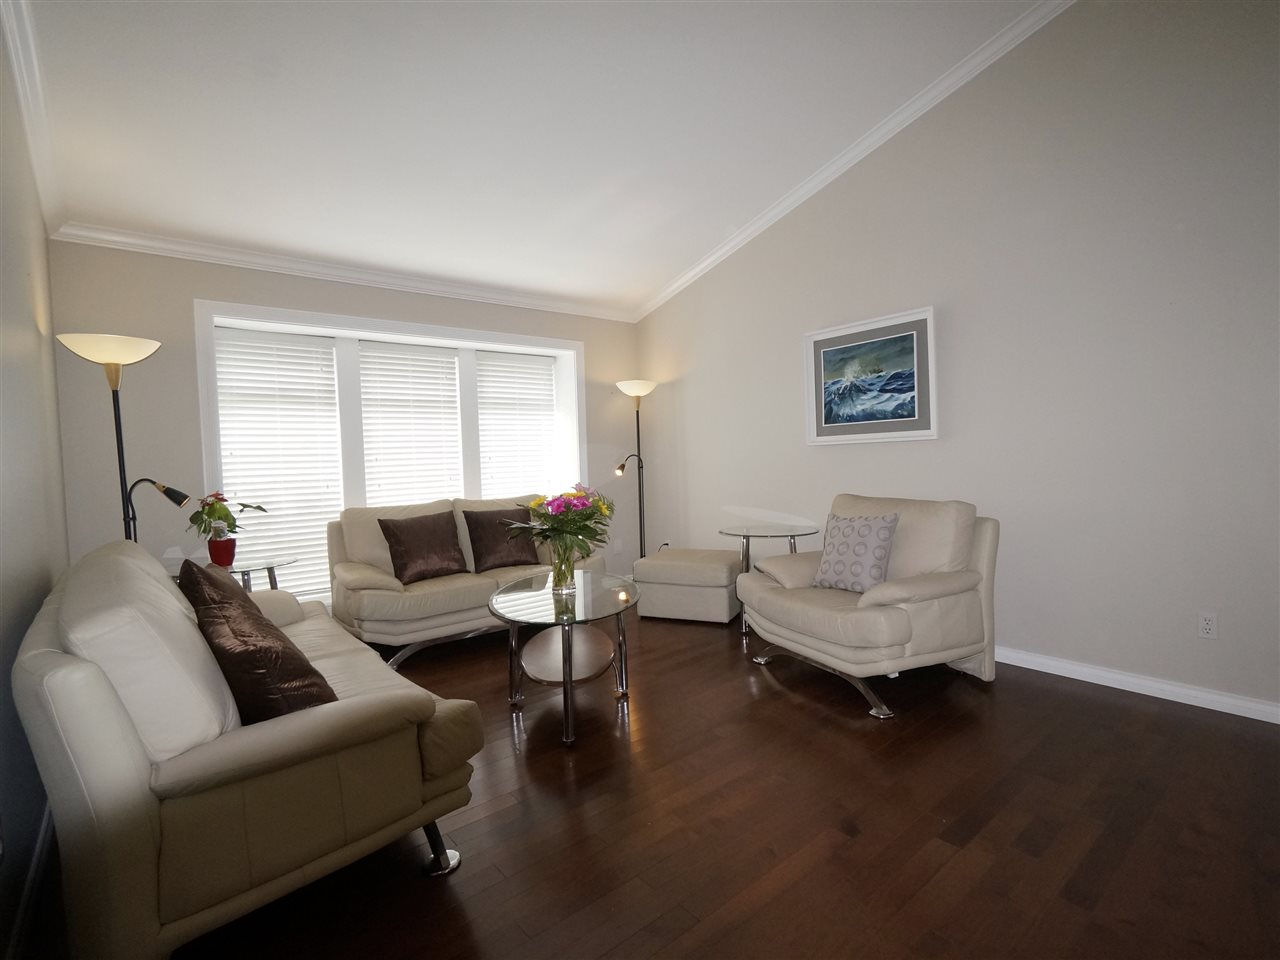 Photo 13: 2535 COLONIAL Drive in Port Coquitlam: Citadel PQ House for sale : MLS® # R2174757